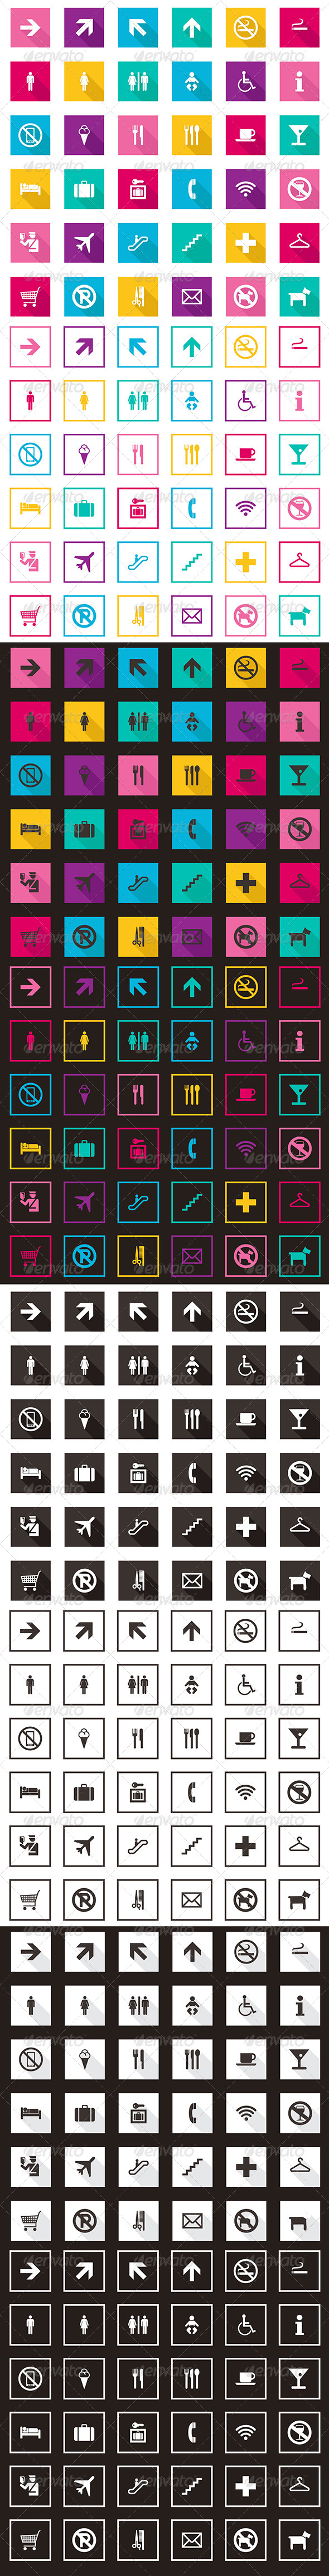 GraphicRiver Travel And Tourism Icons Collection 6959756